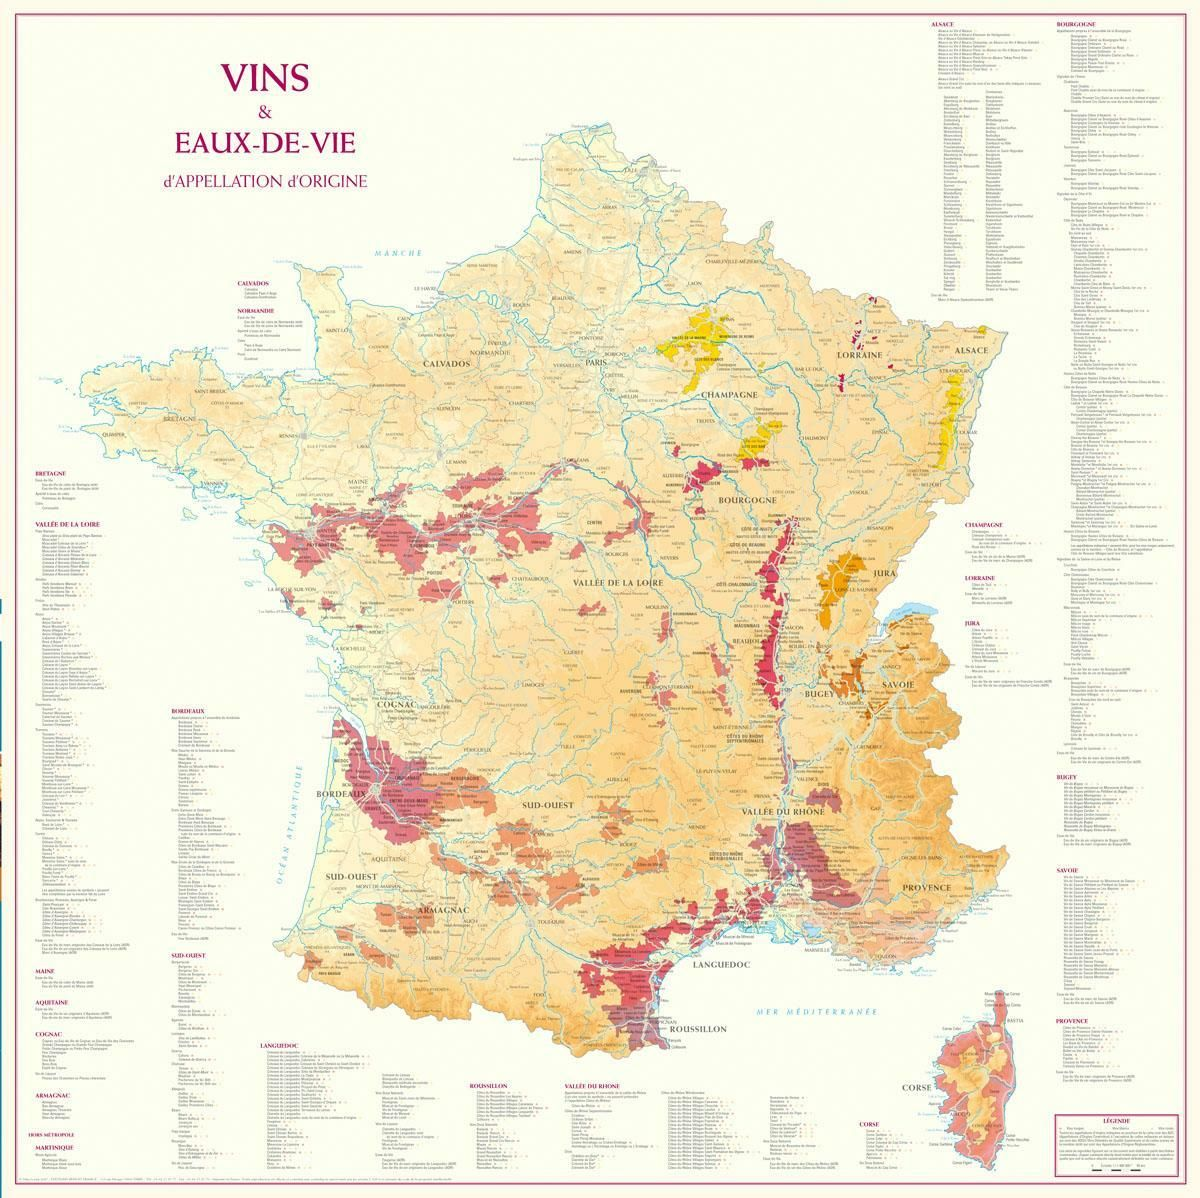 Carte Vins Et Eaux De Vie D Appellation D Origine France